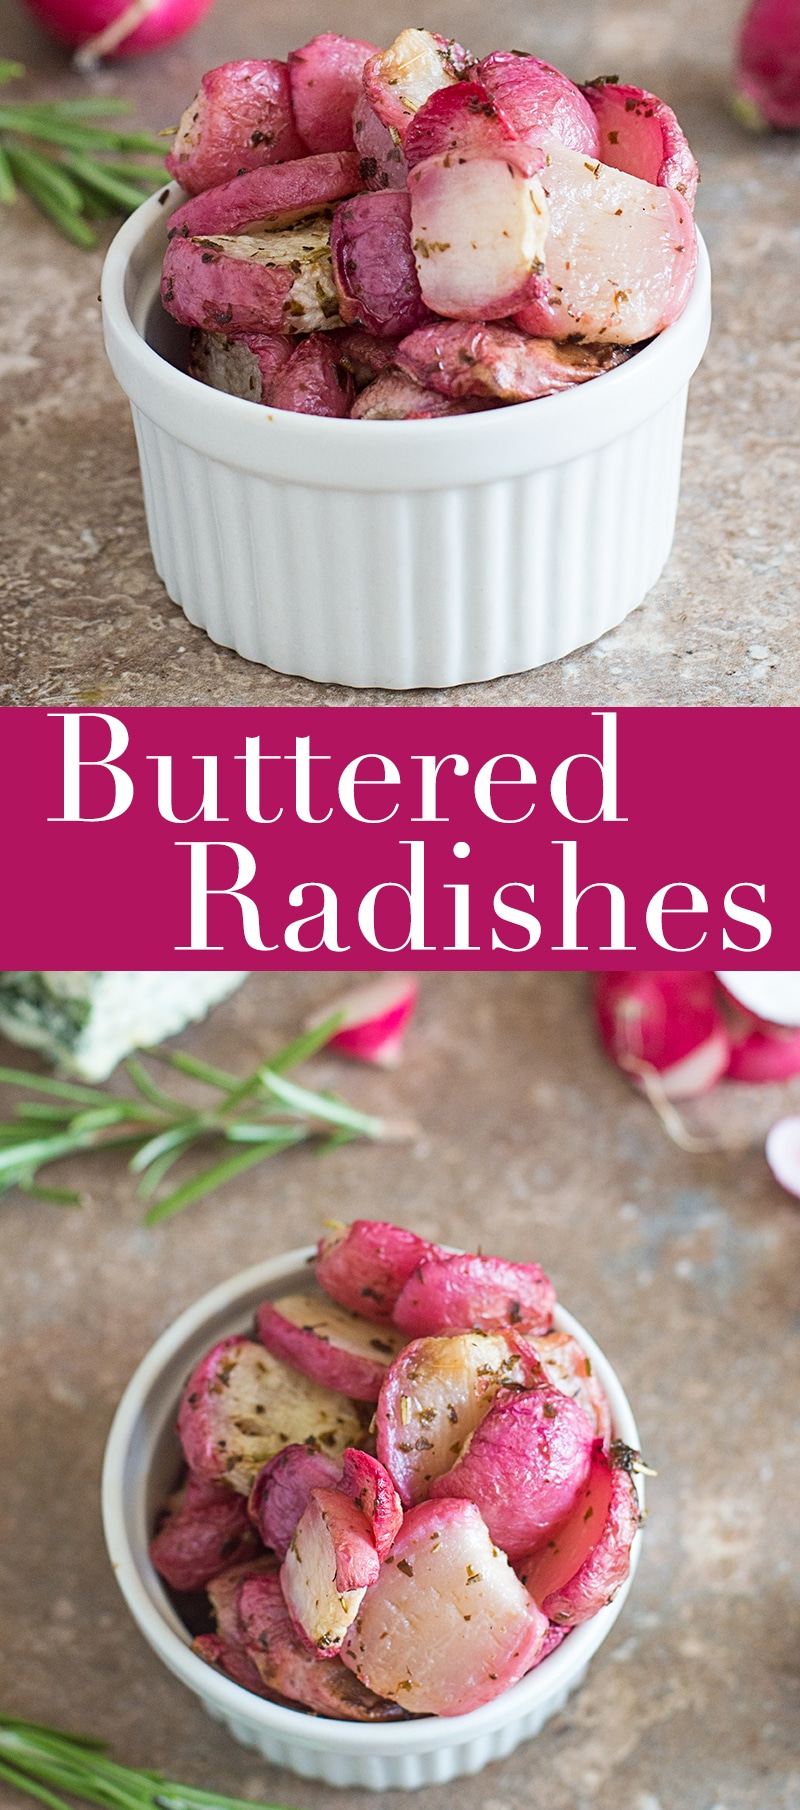 Buttered Radishes are the perfect snack recipe for any day of the week. Using basil infused vegan butter, these radishes can be used as salad toppings or eaten right out the baking tray!